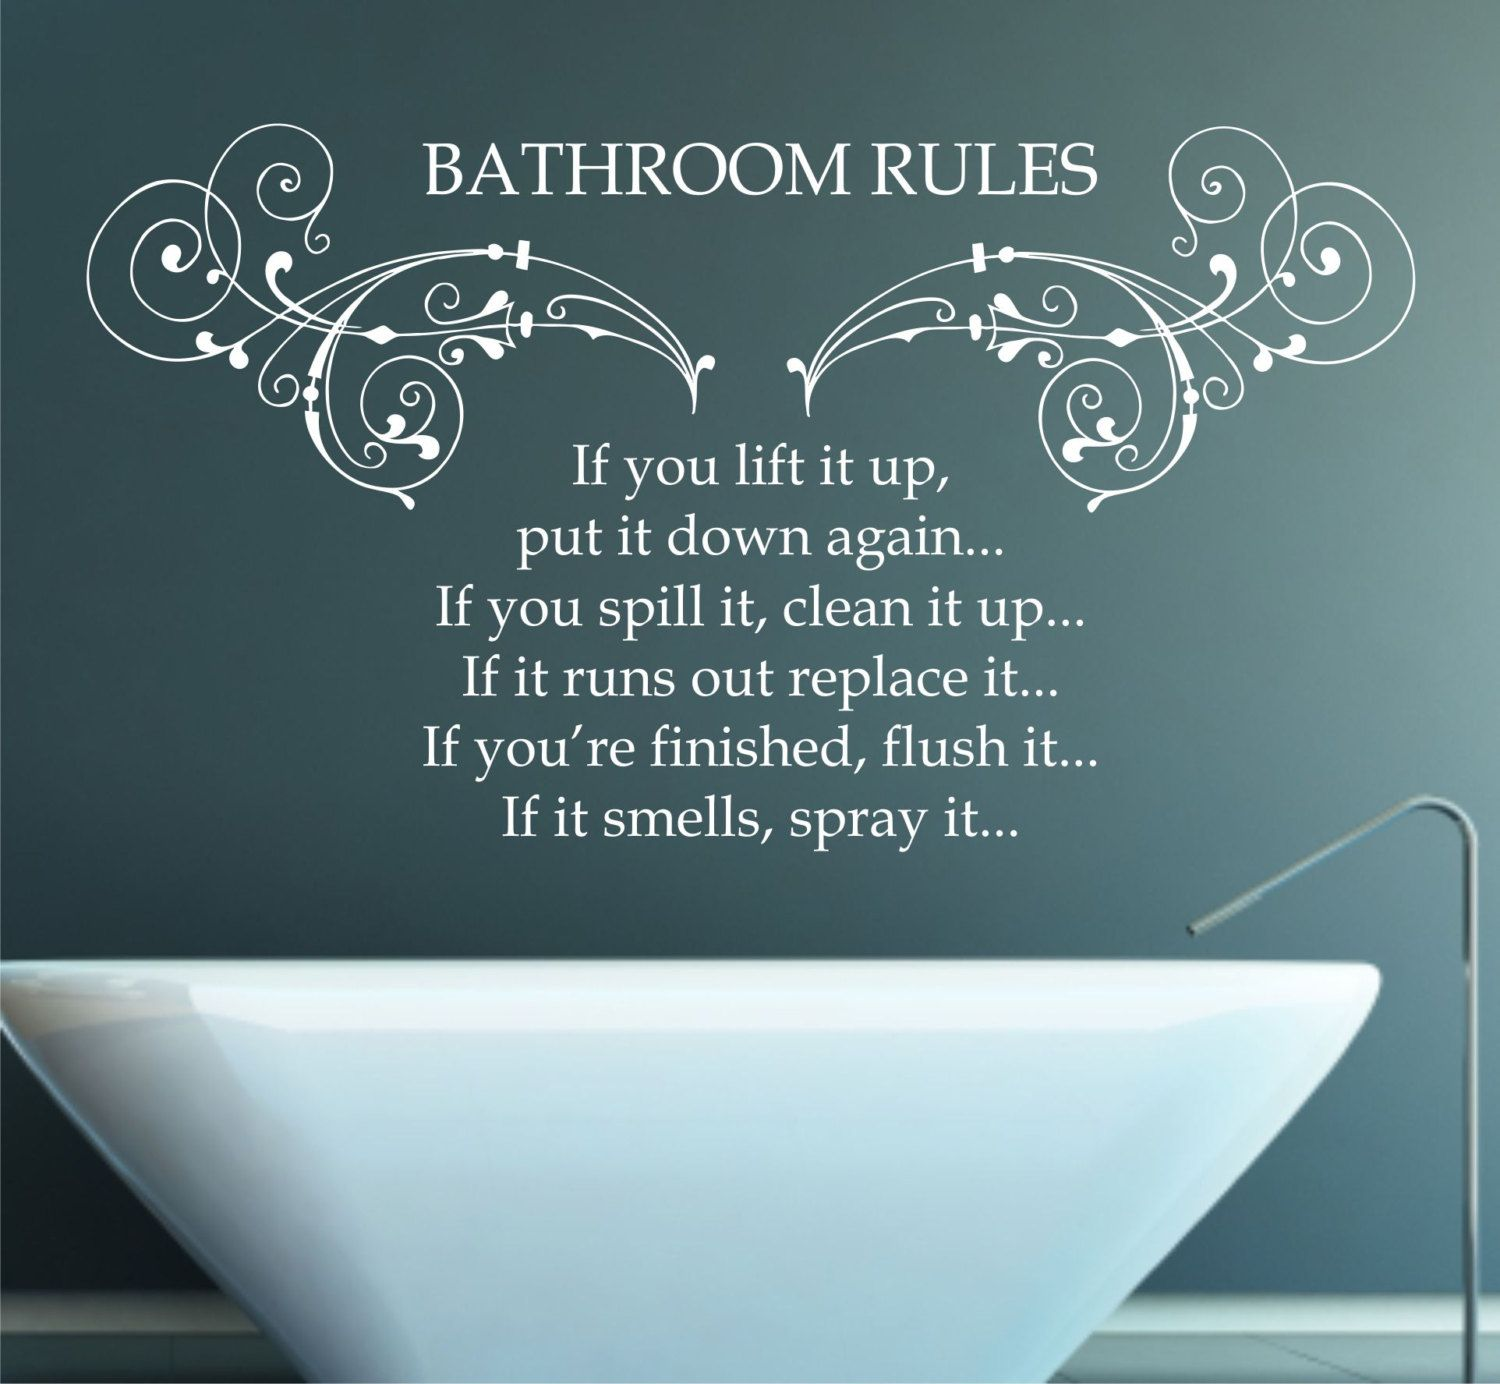 Bathroom Rules Quote Matt Vinyl Wall Art Sticker Decal Mural 90cm X 51 3cm By Purrfic On Etsy